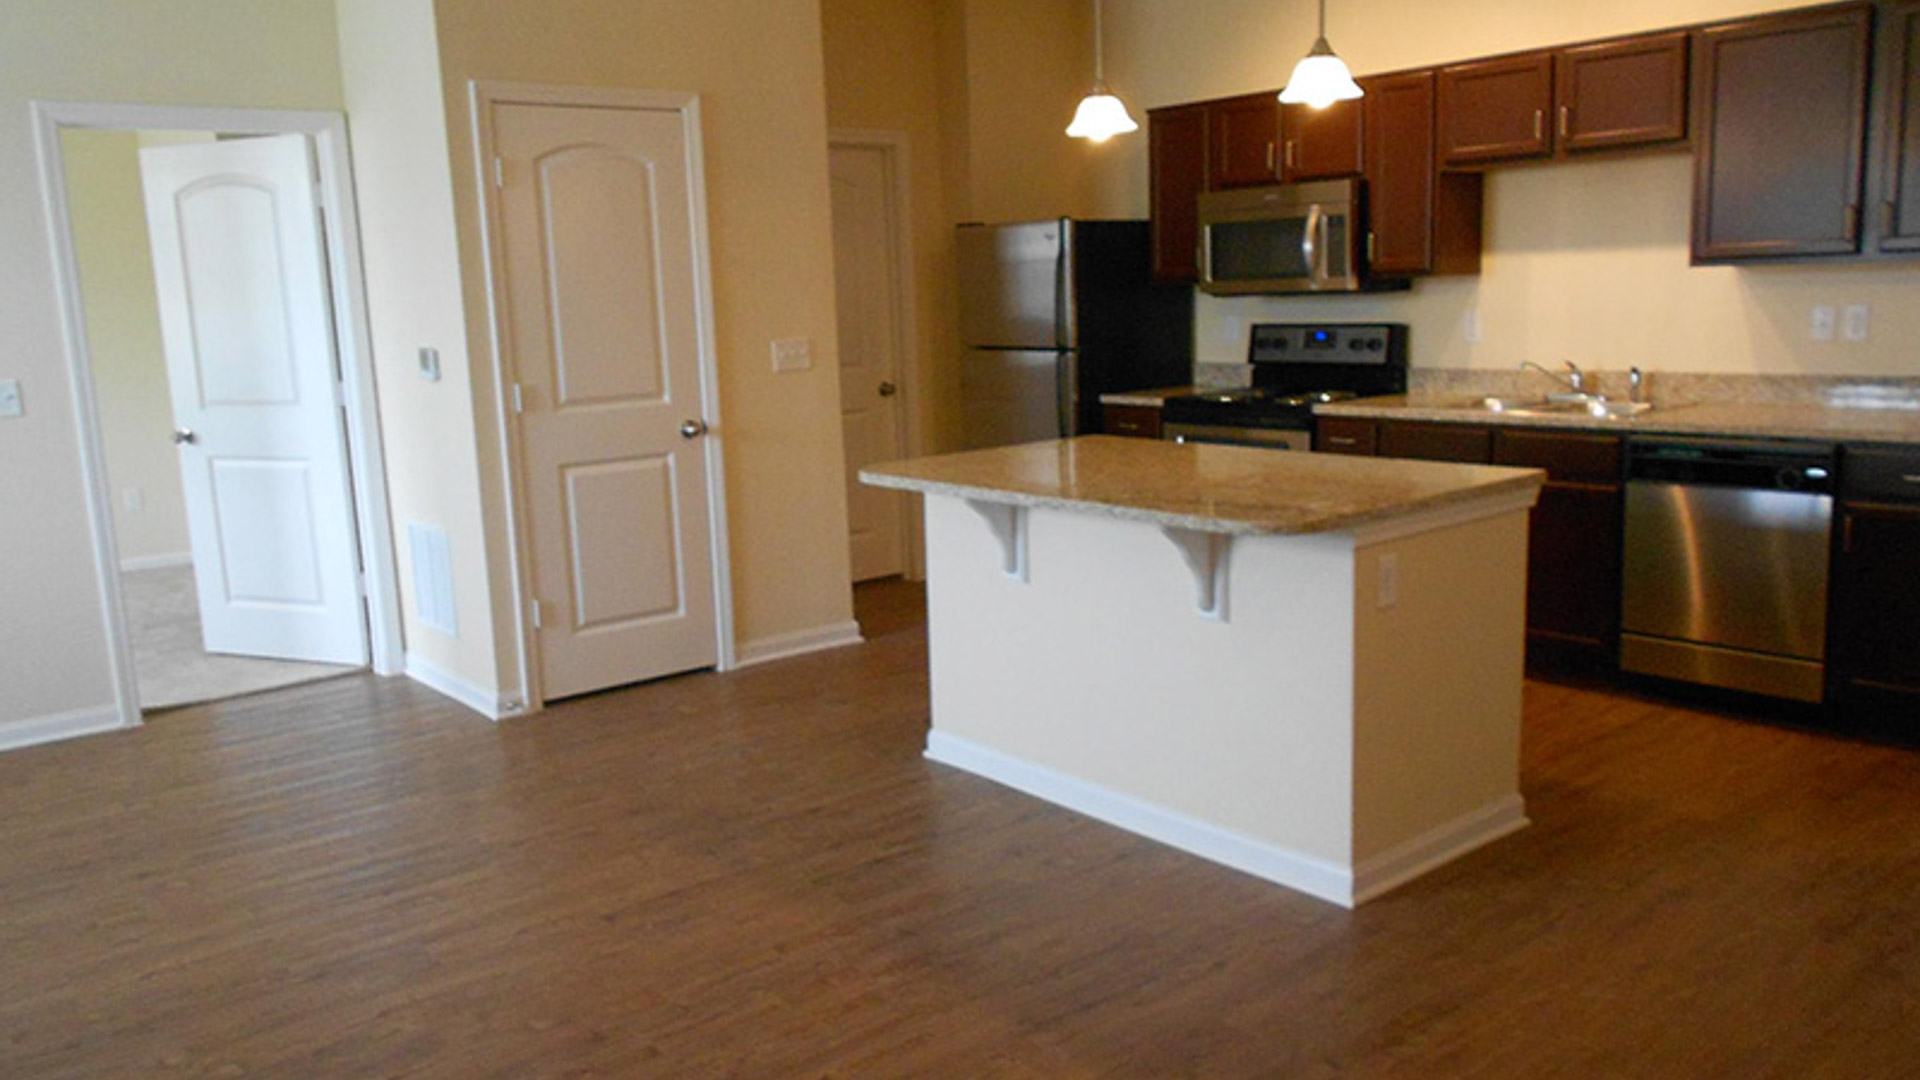 Upgraded kitchen with stainless steel appliances at Springs at Bettendorf Apartments in Iowa